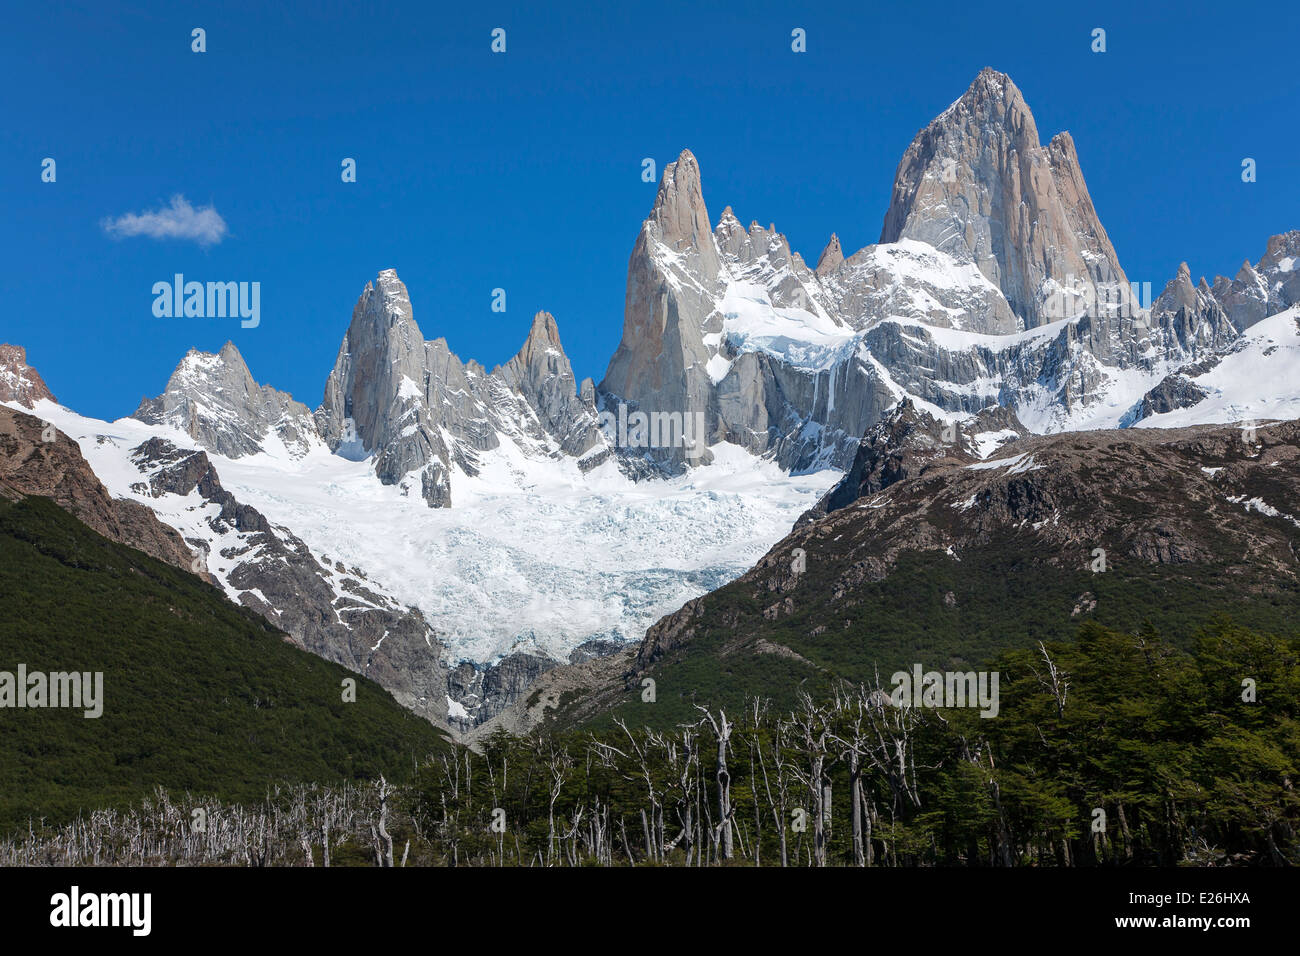 Mount Fitz Roy (3405m). Los Glaciares National Park. Patagonia. Argentina - Stock Image